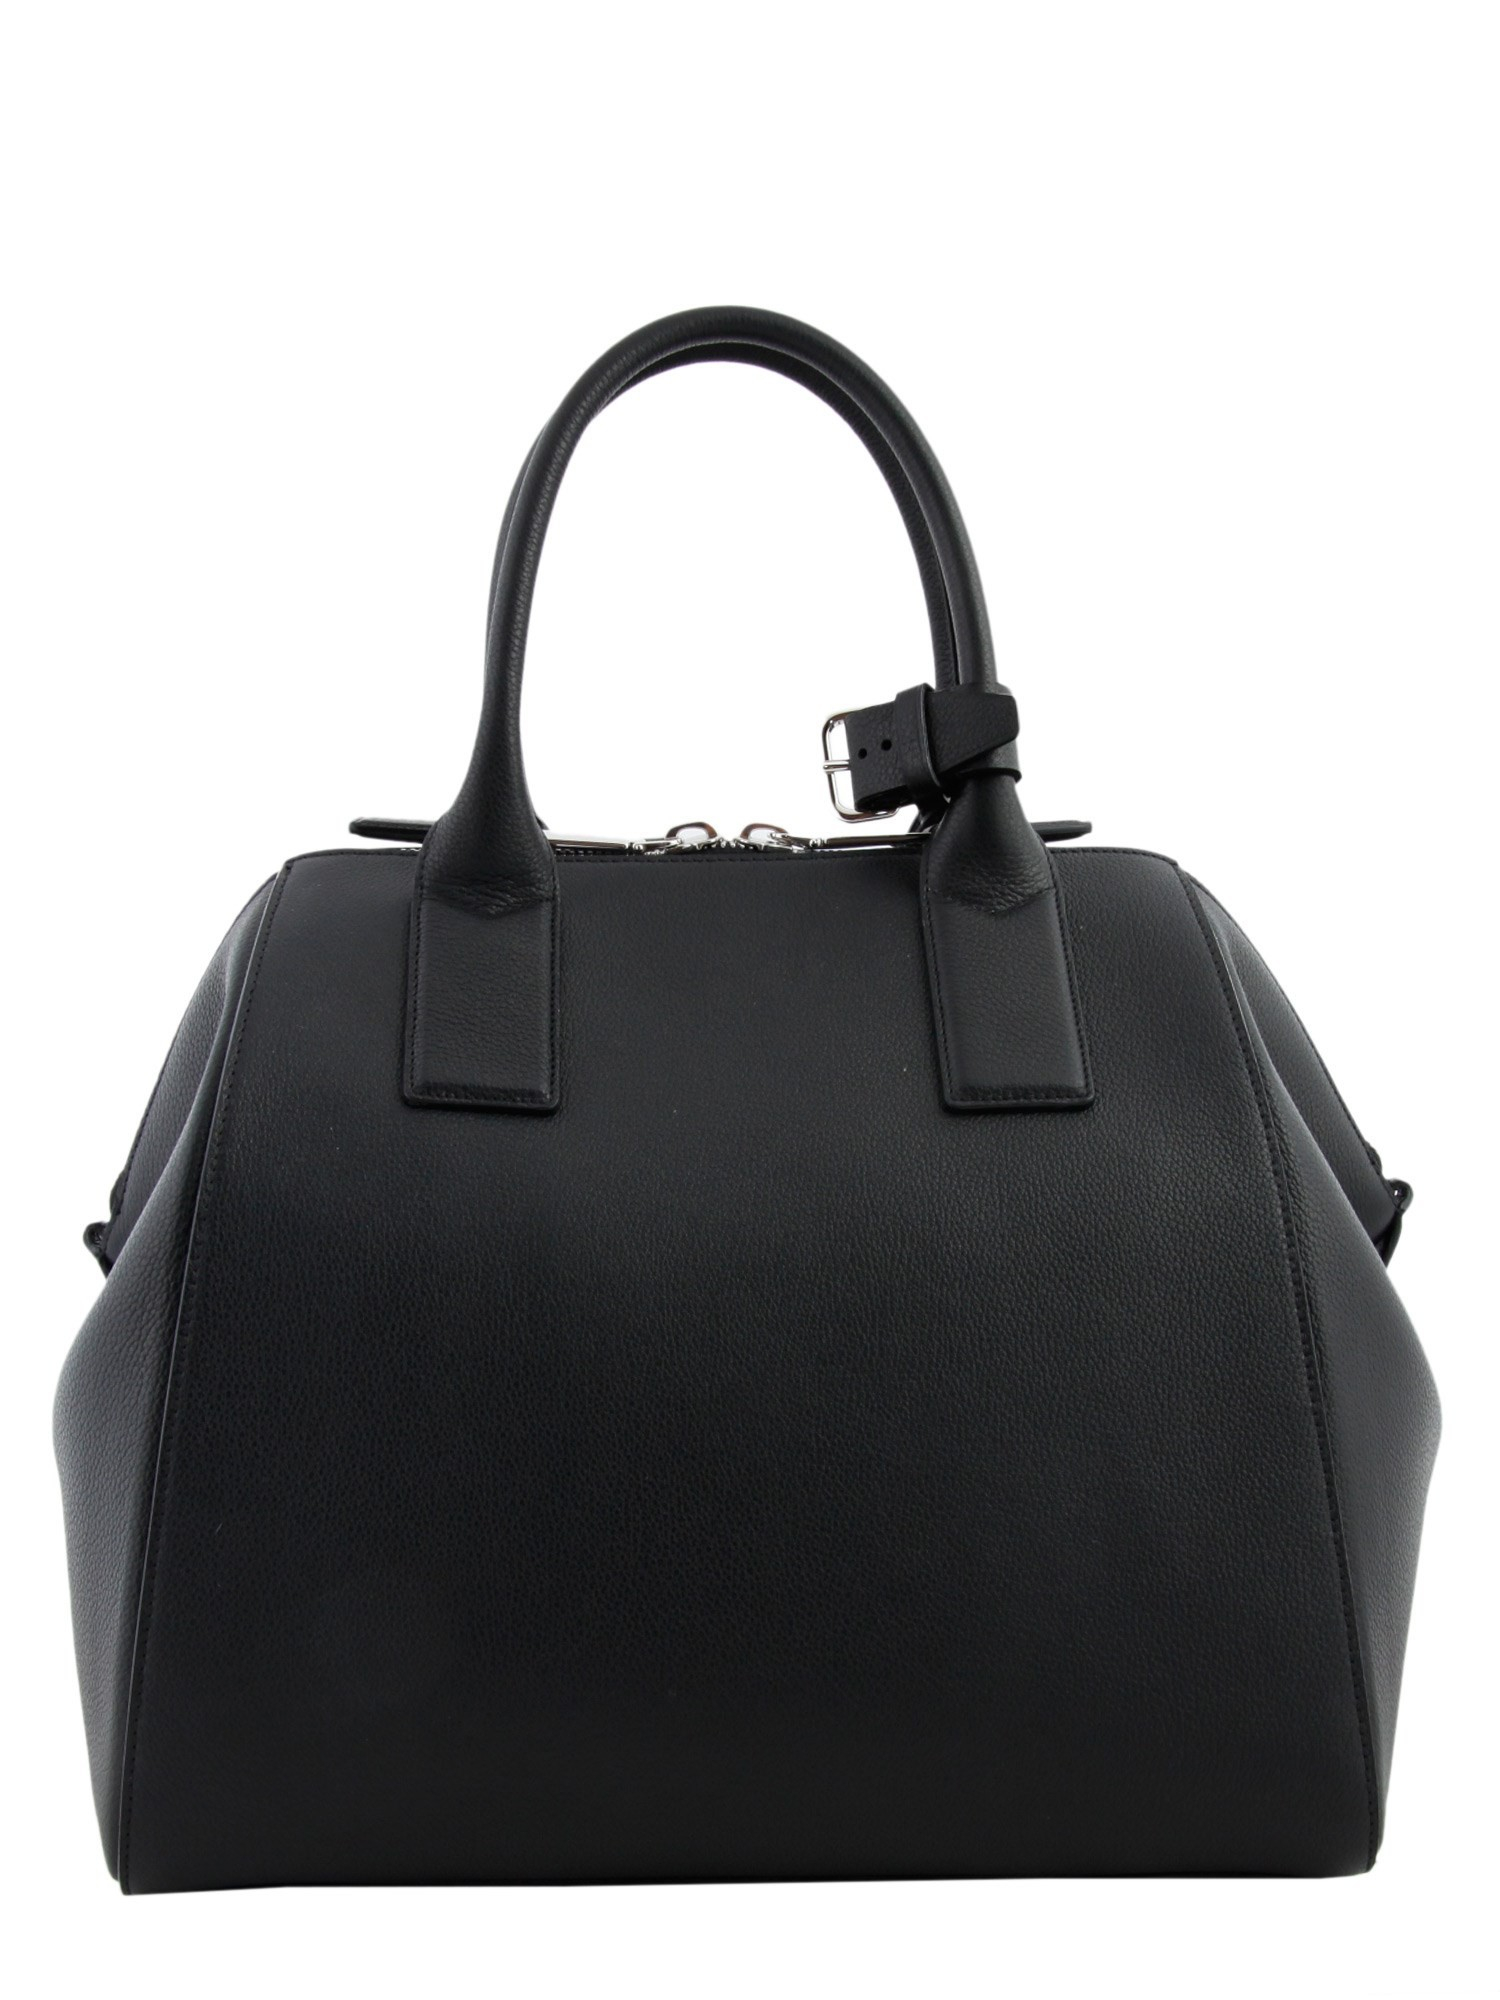 5def31aef44 Marc Jacobs Backpack Purse   City of Kenmore, Washington